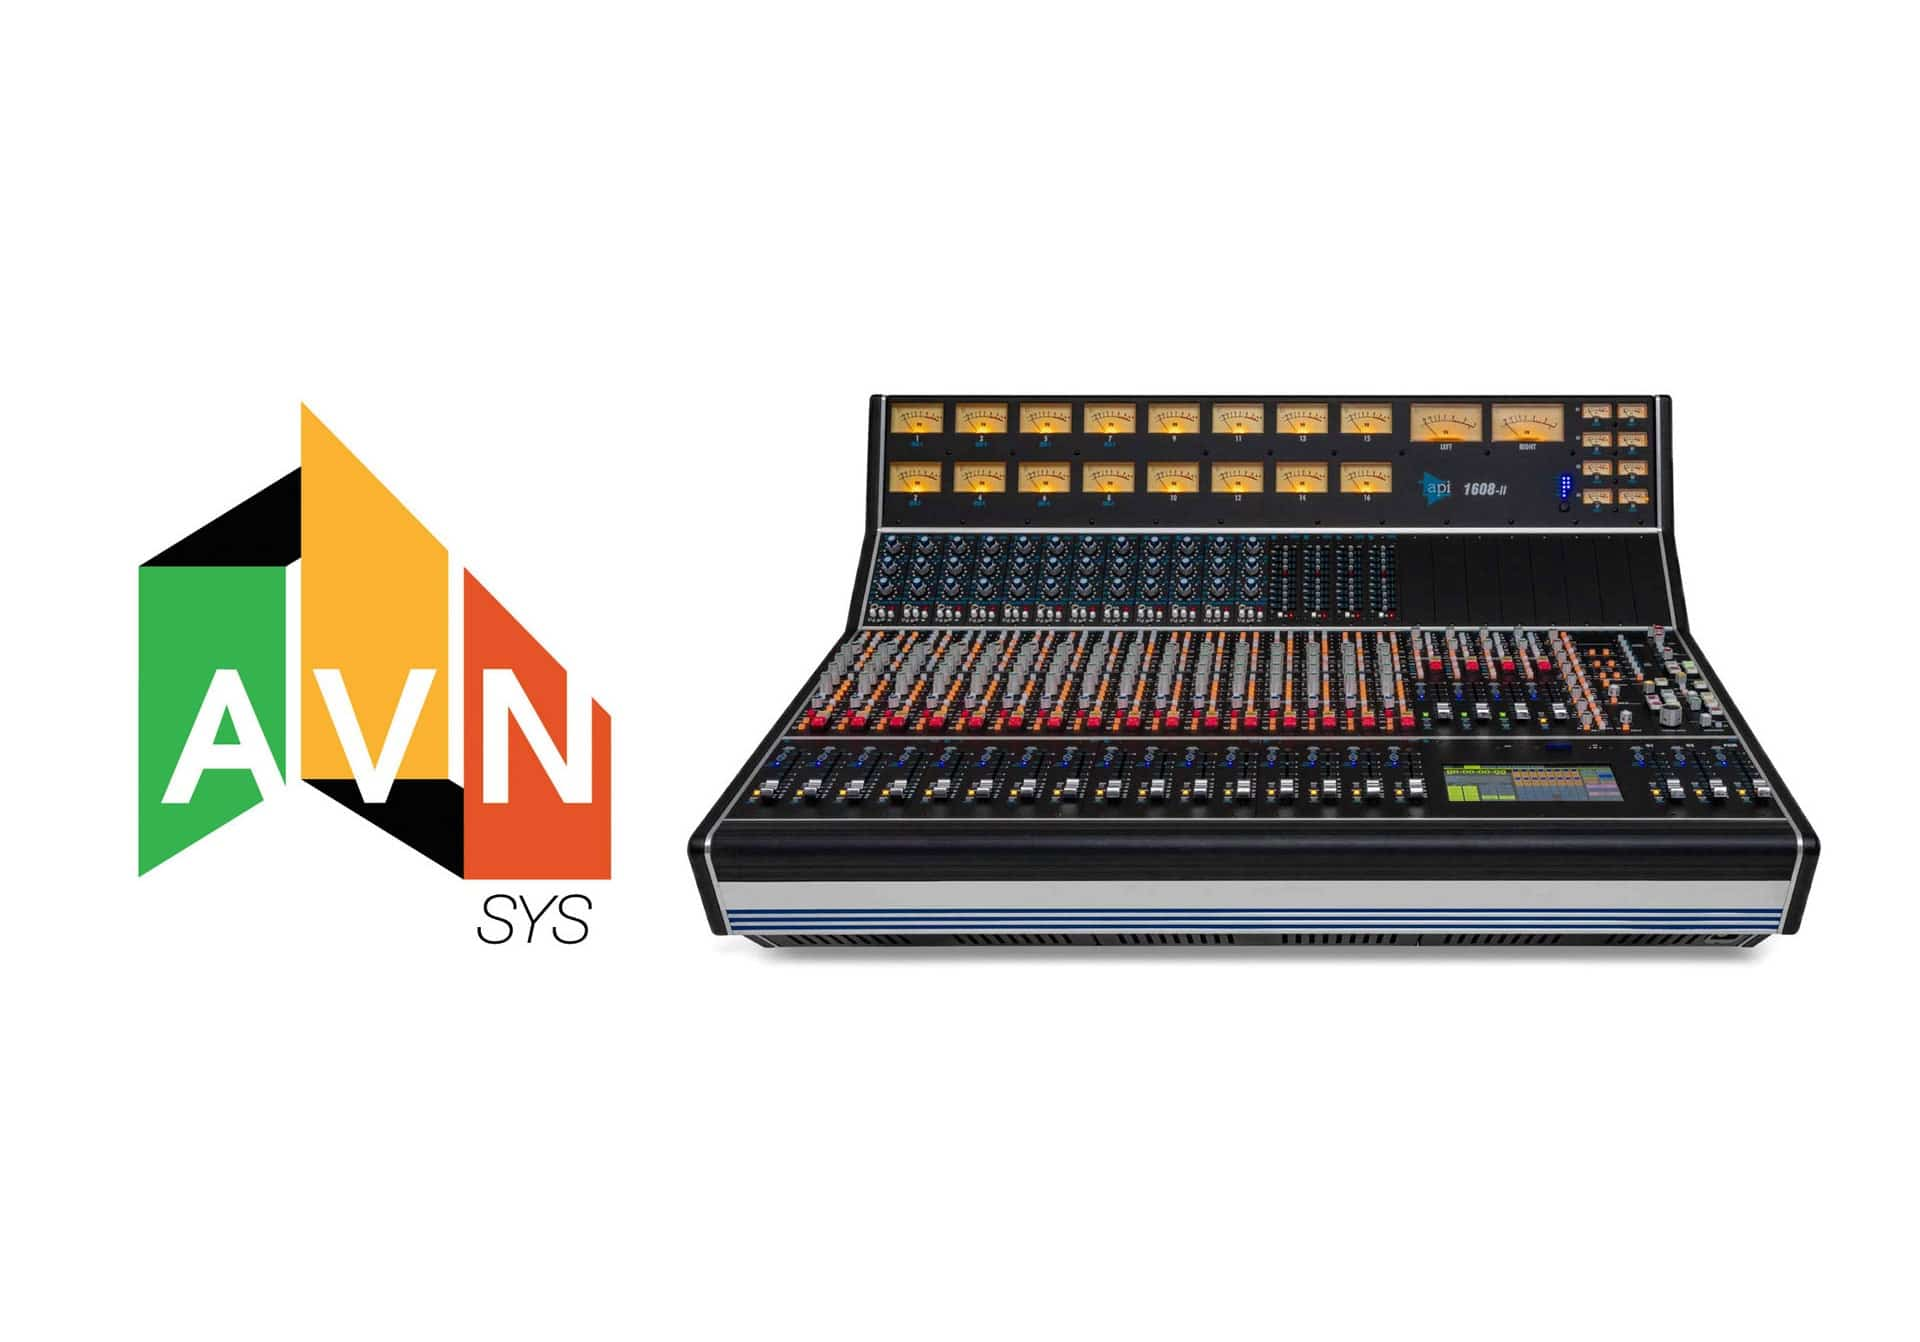 API 1608-II Console the Choice for Five Towns College